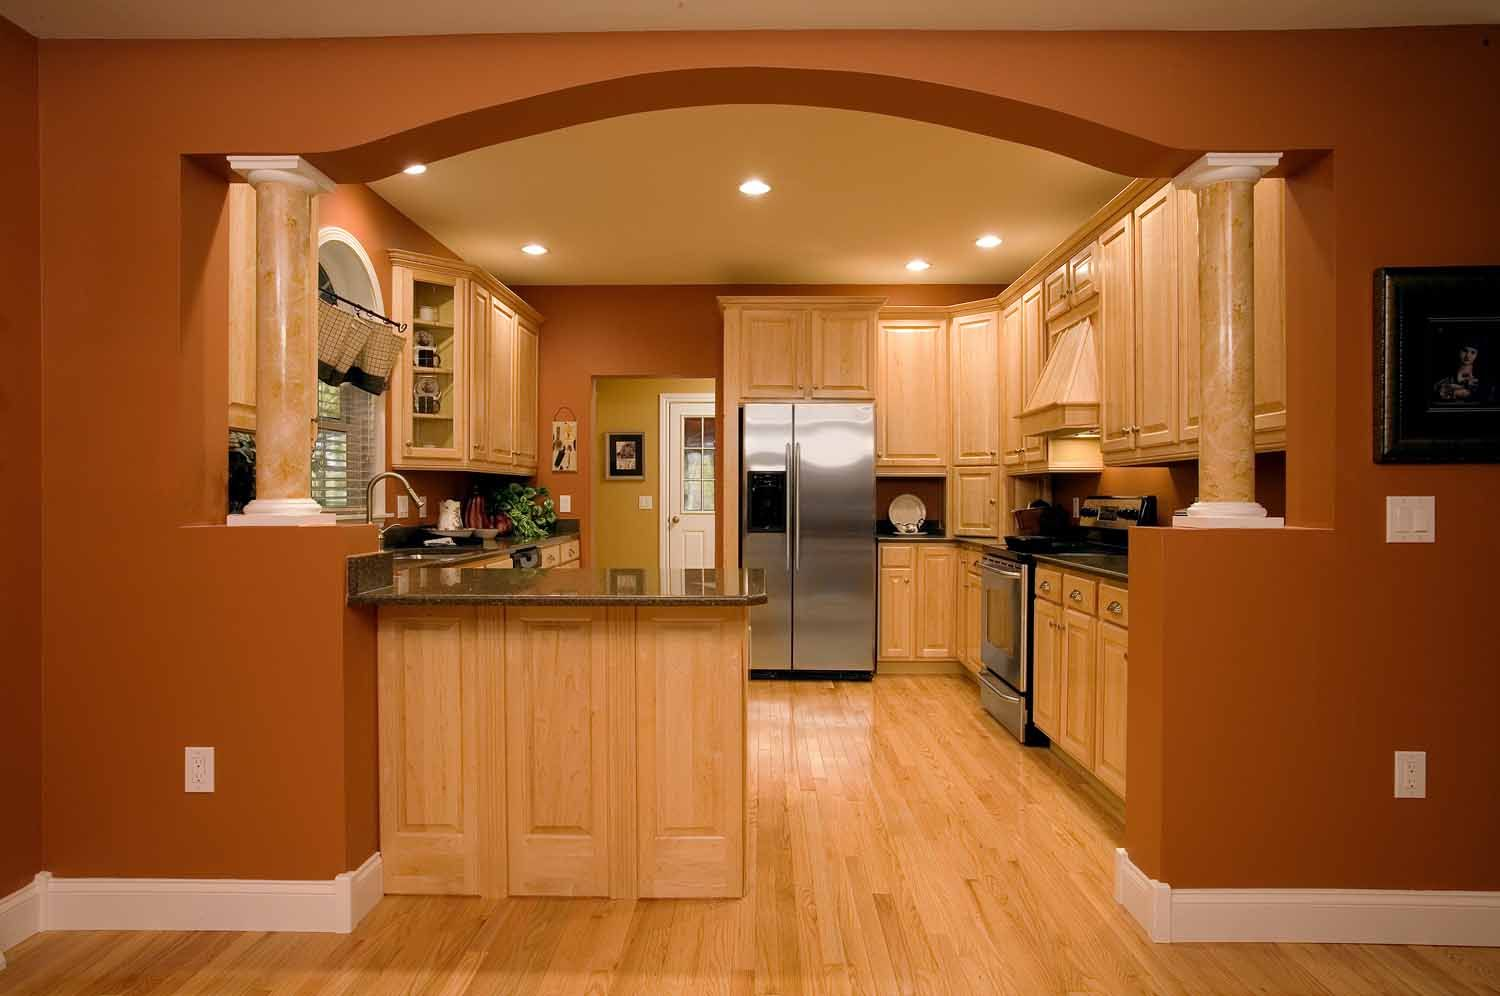 Half Walls With 6 Round Columns Elliptical Arch